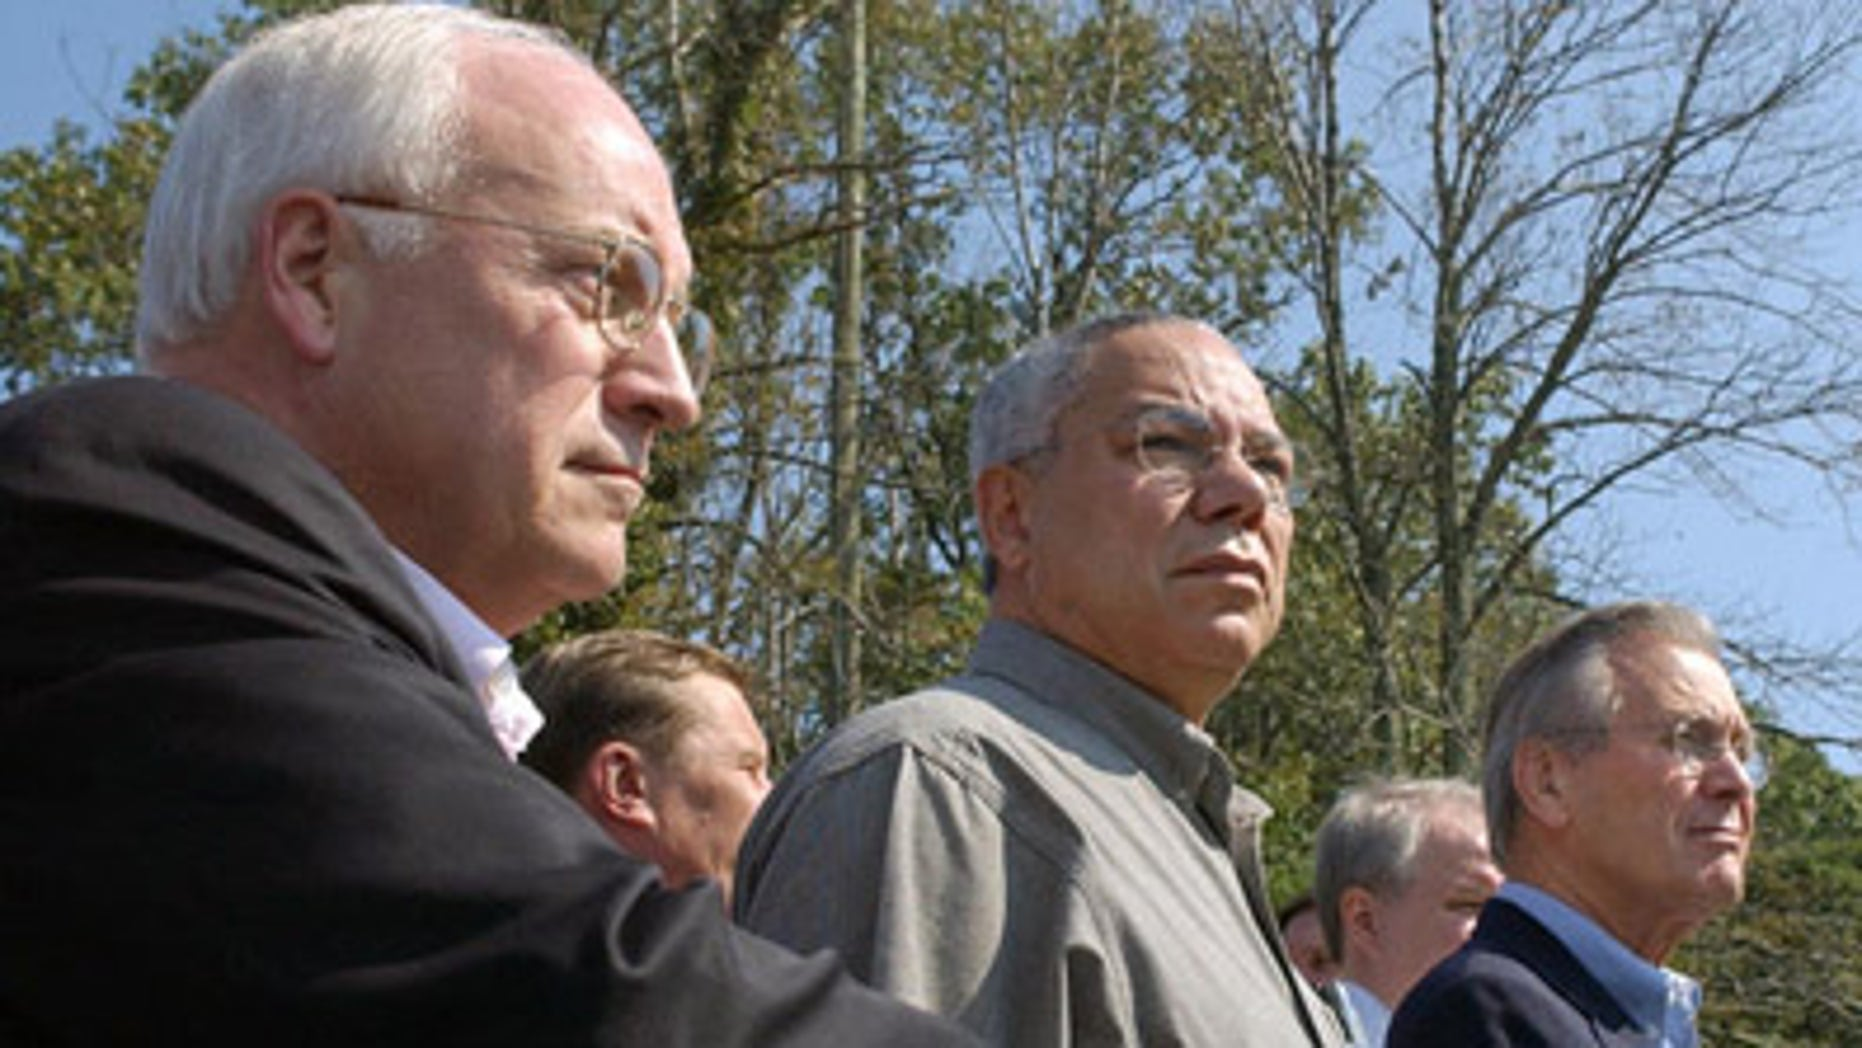 FILE: In this Sept. 27, 2003, photo, then-Vice President Dick Cheney stands with Secretary of State Colin Powell and Secretary of Defense Donald Rumsfeld at Camp David.